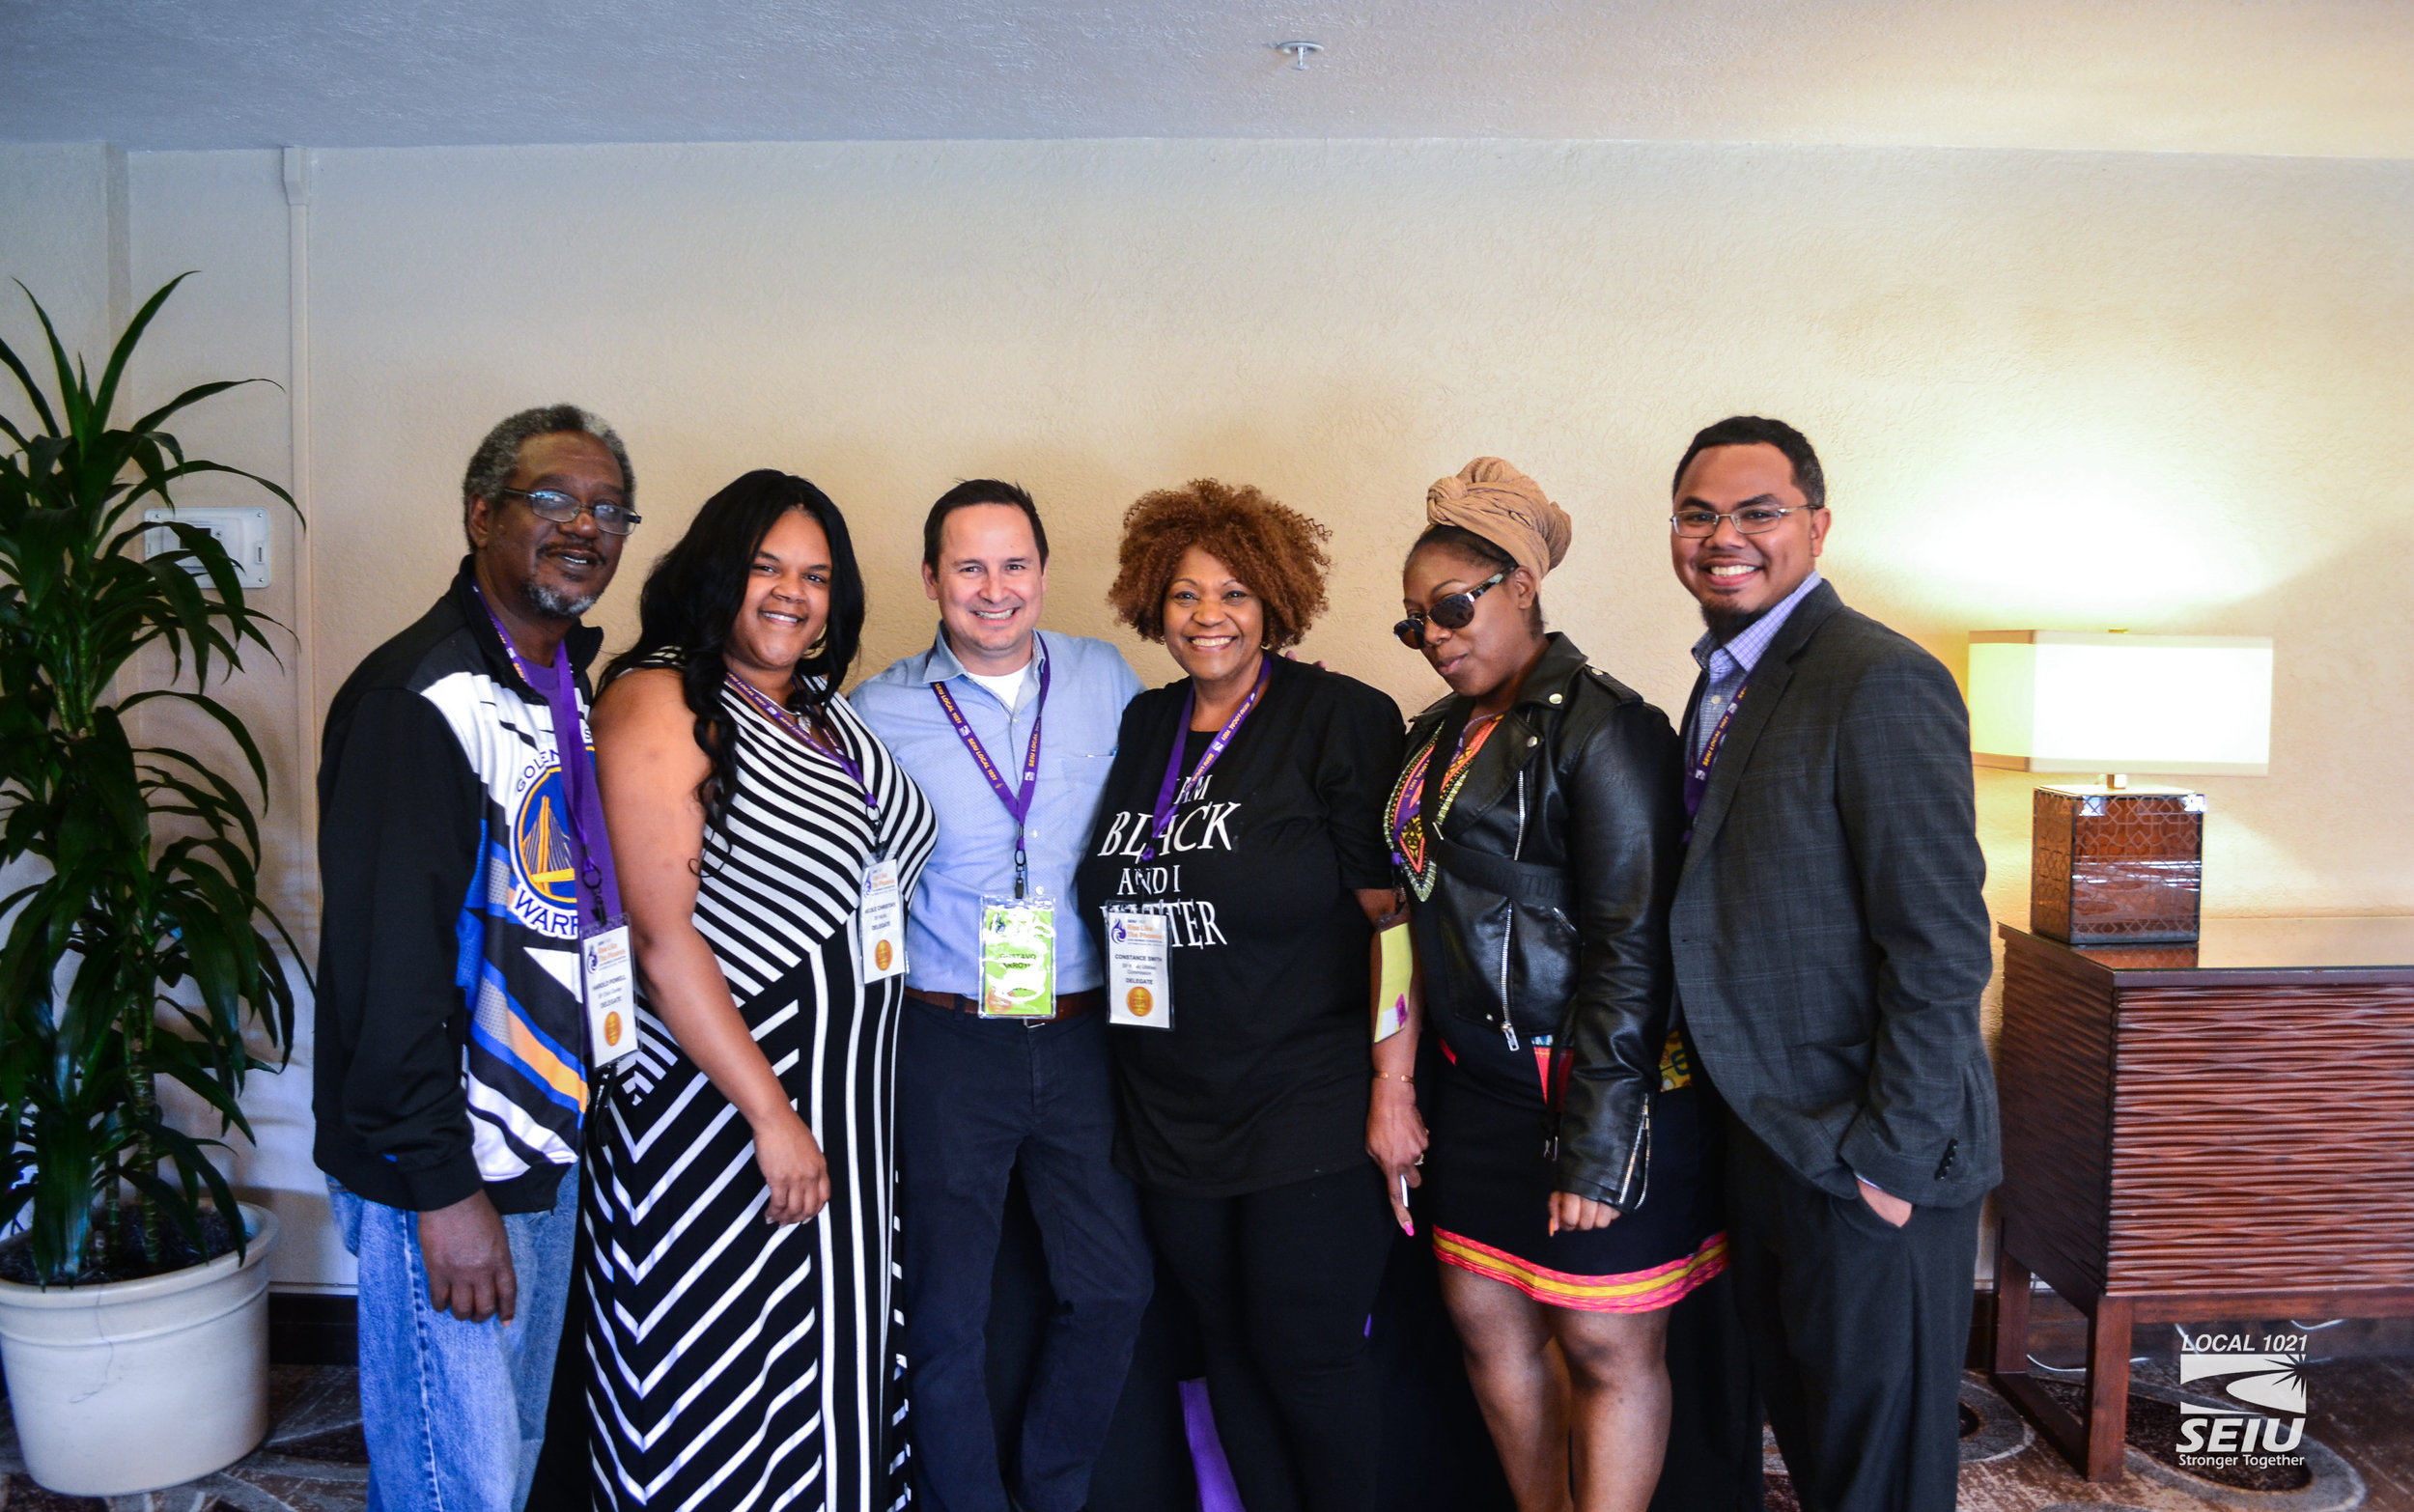 SEIU 1021 Convention Group Portraits-94.jpg